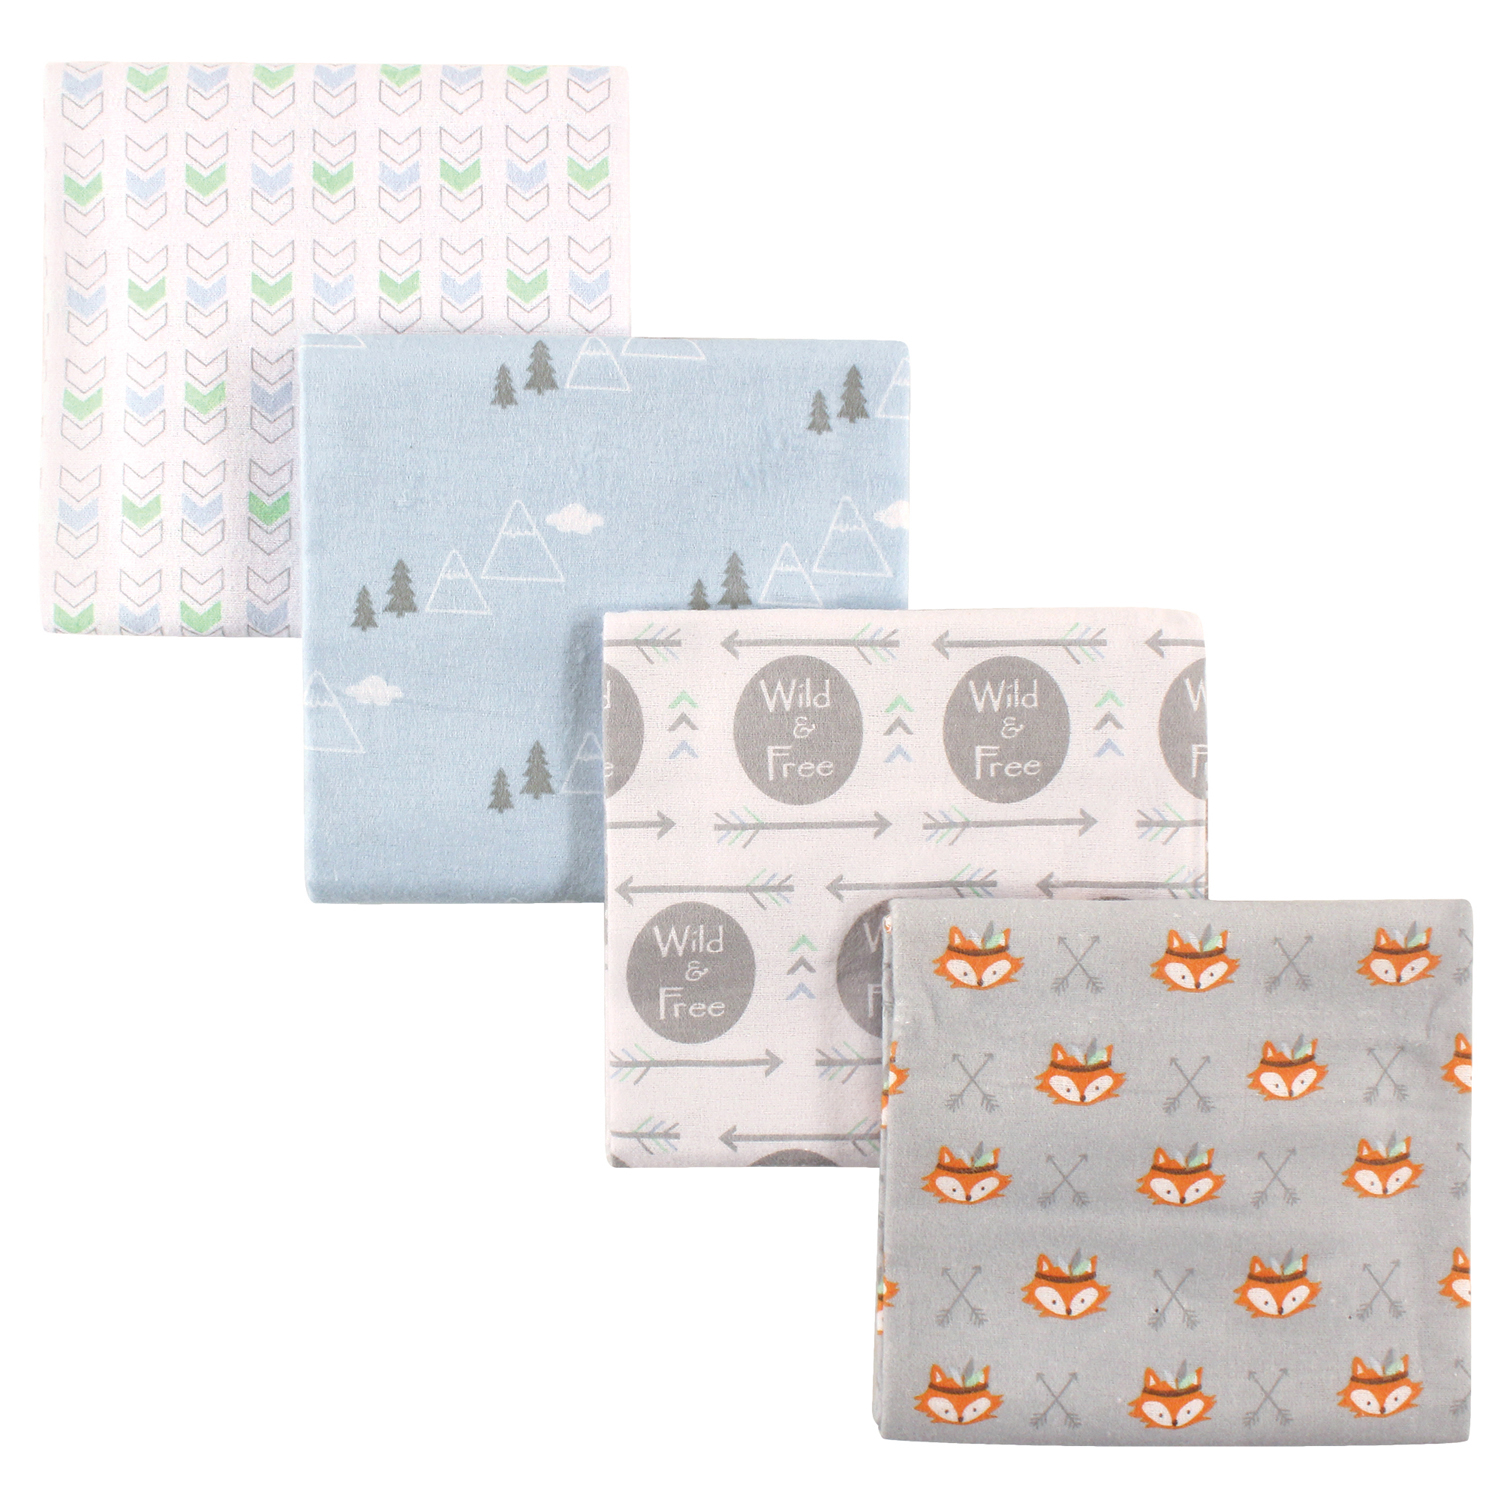 Luvable Friends Basics Baby Flannel Receiving Blankets, 4-Pack - Wild & Free